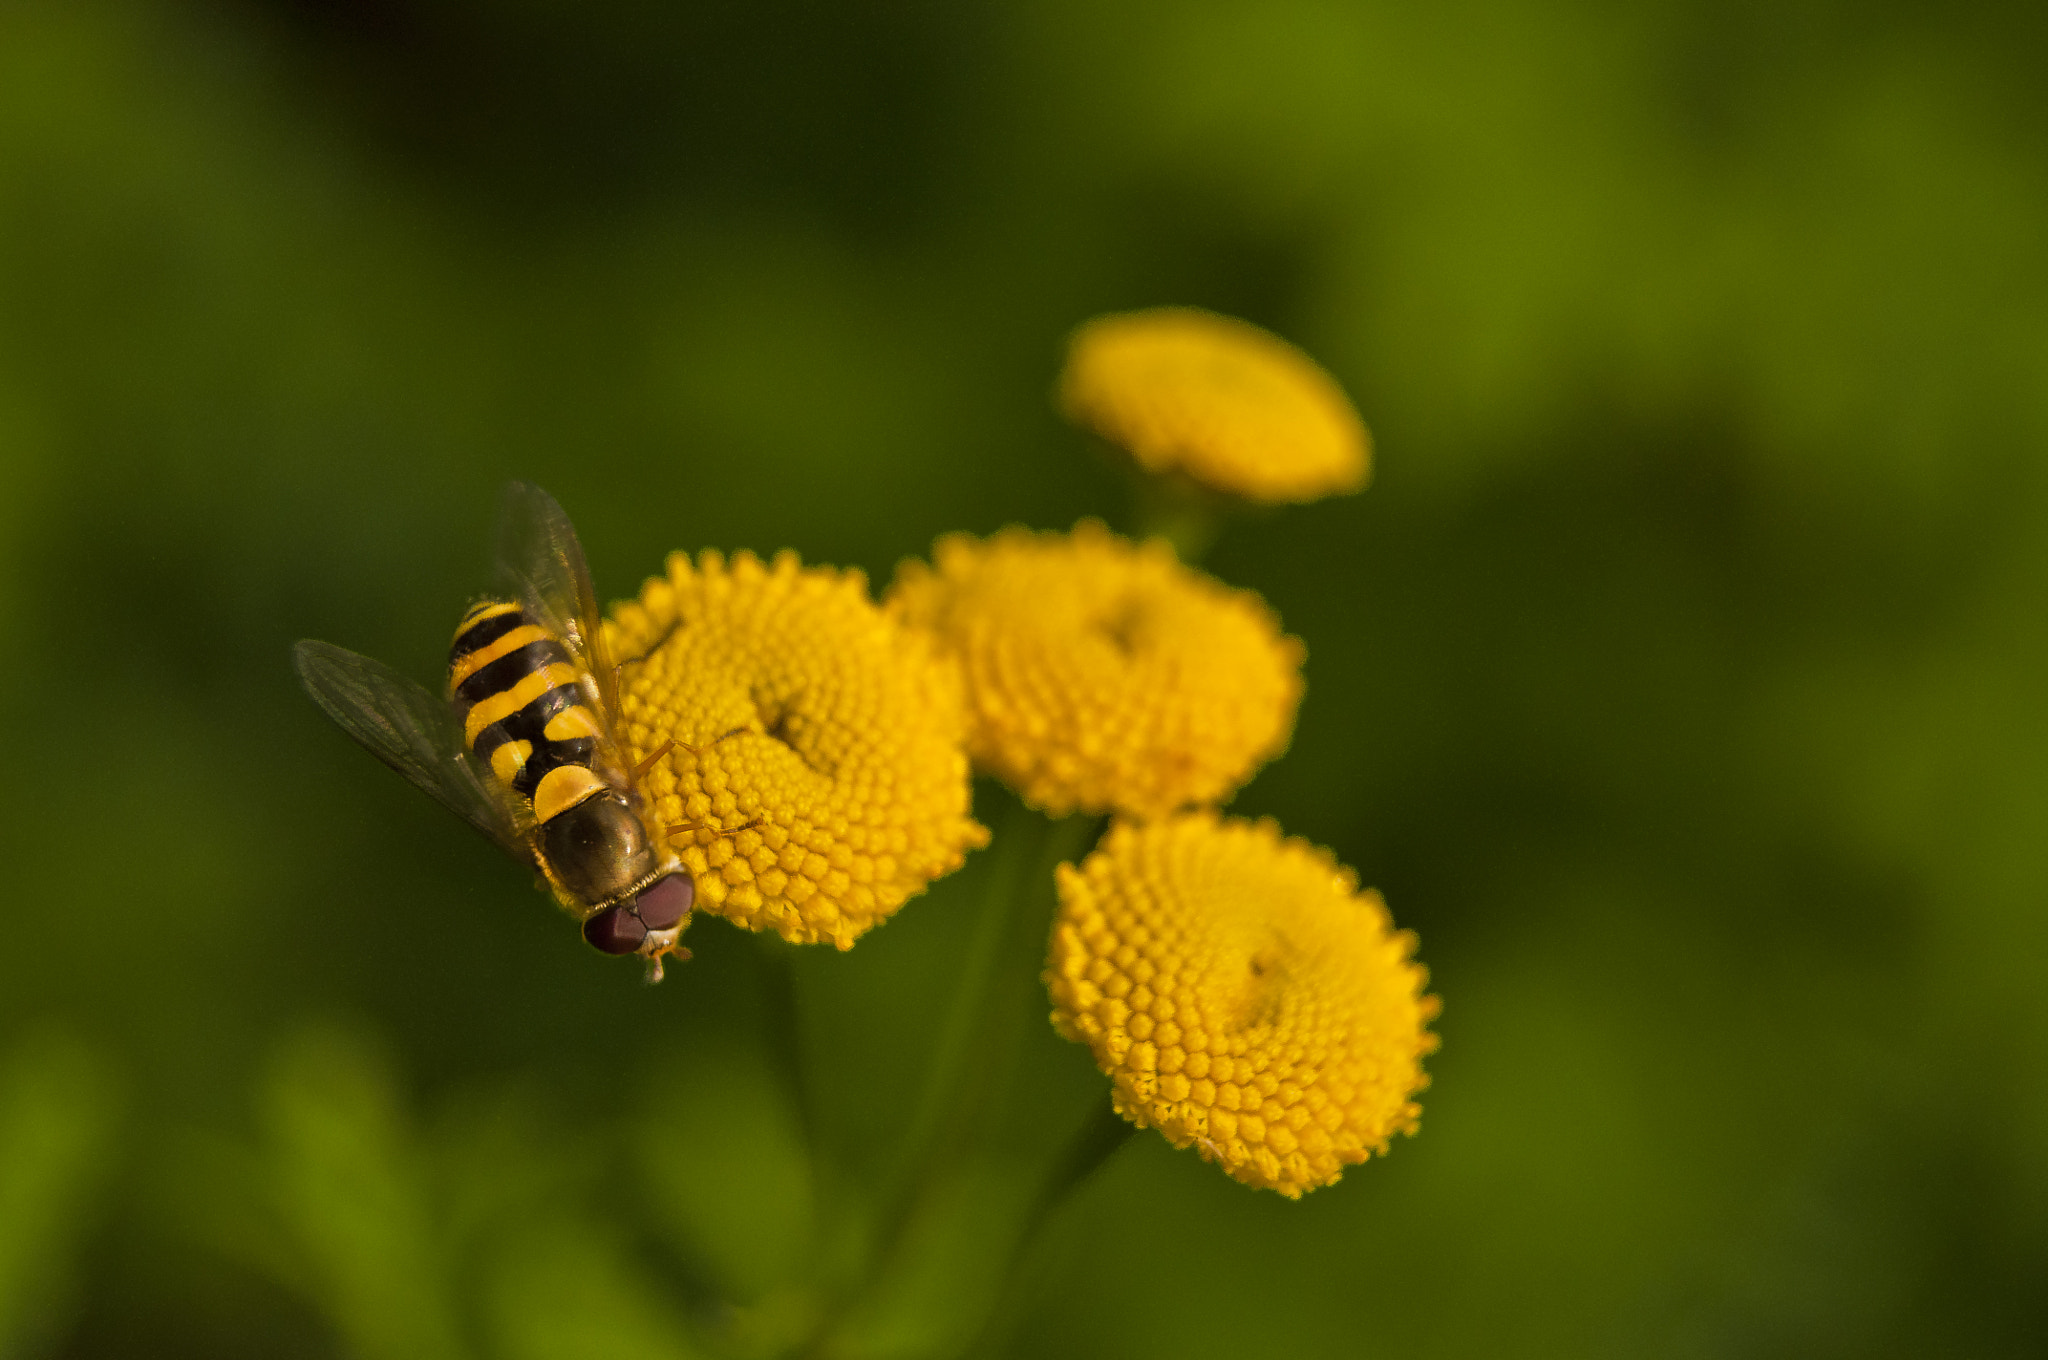 Photograph Yellow fly by Jan Westman on 500px